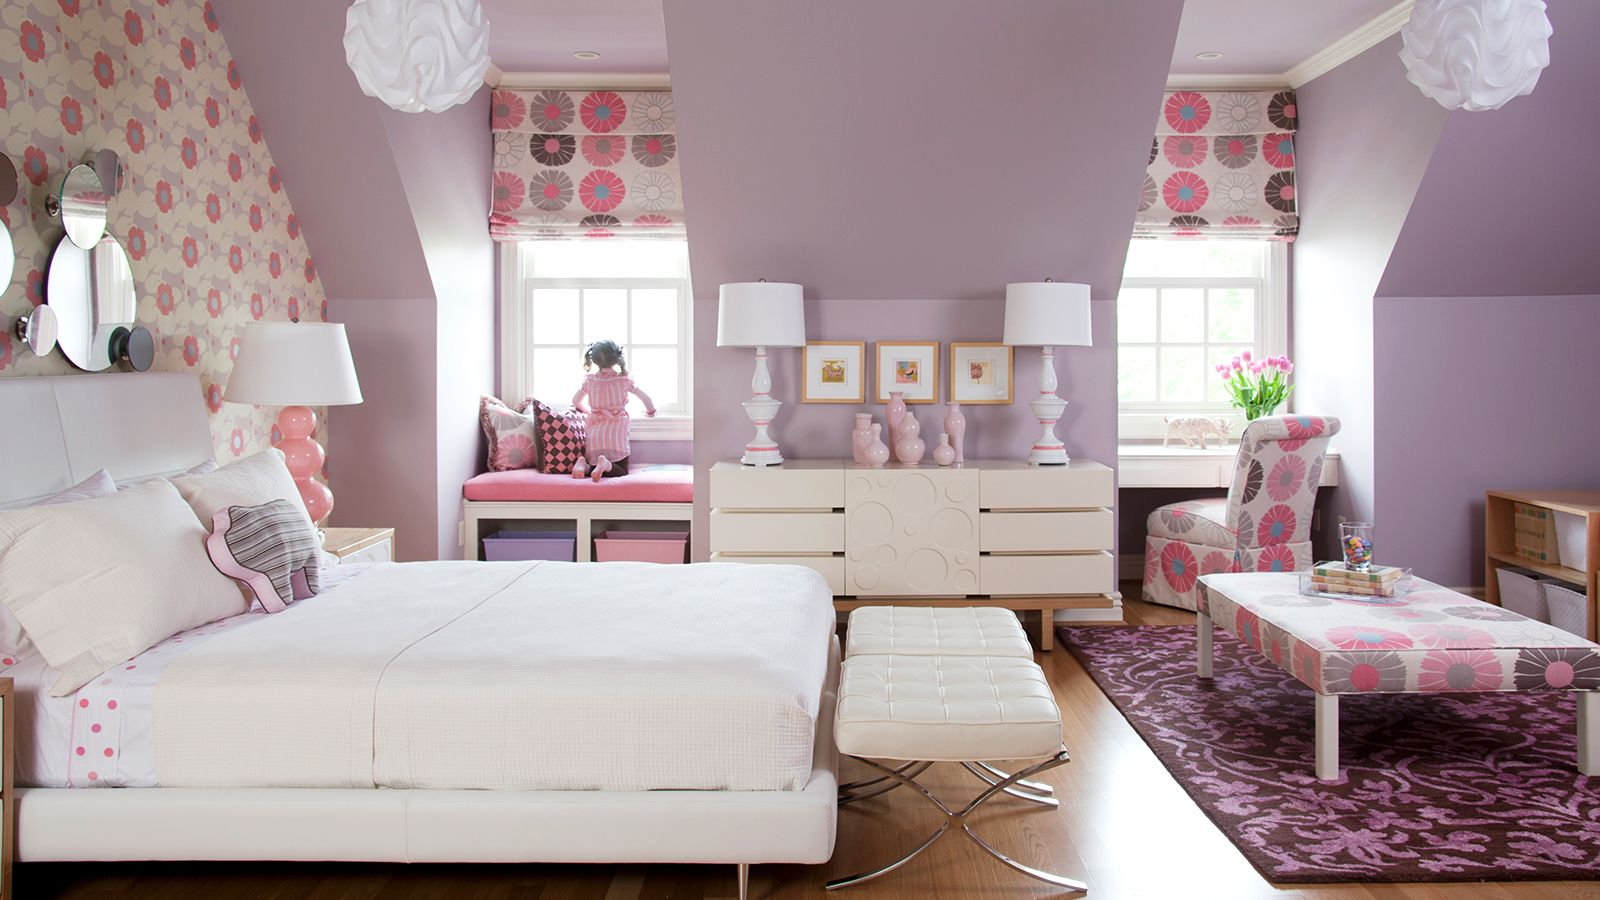 Function Driven Interior Design With Tobi Fairley Bedroom Wall